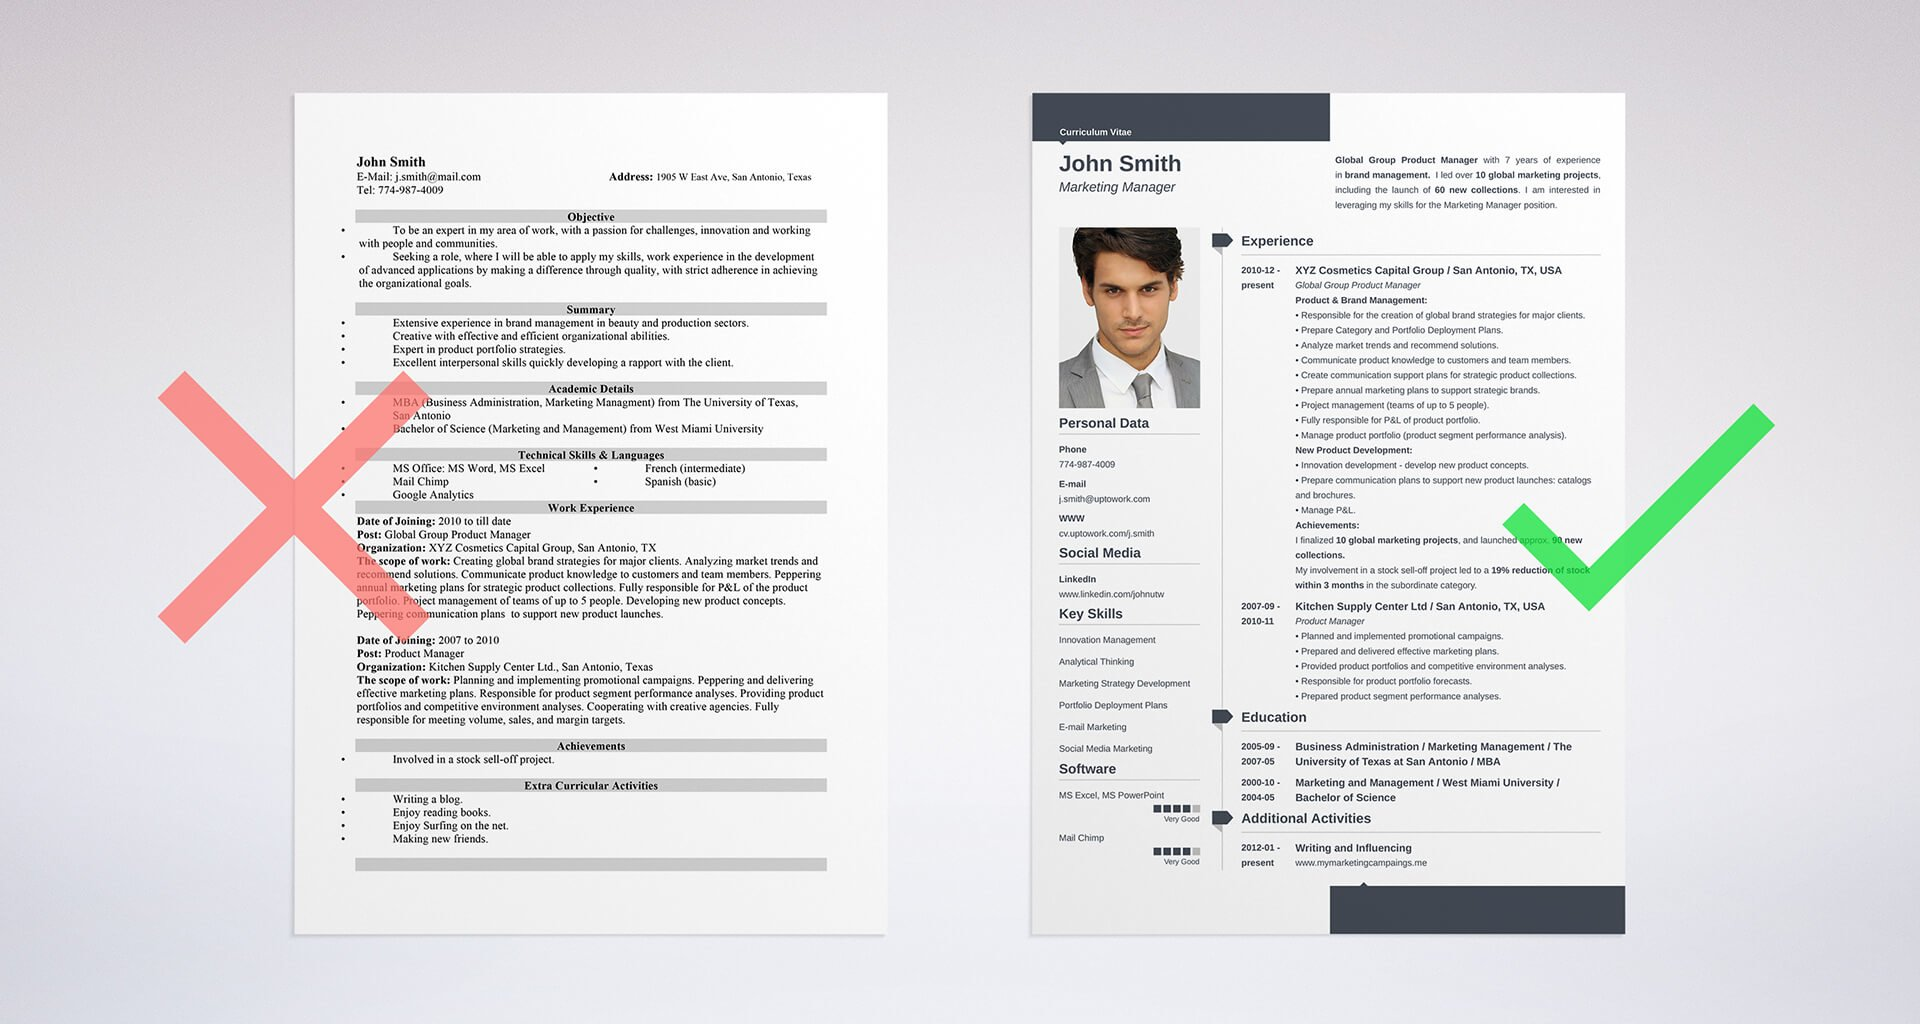 30 best examples of what skills to put on a resume proven tips - Resume Skills Section Example